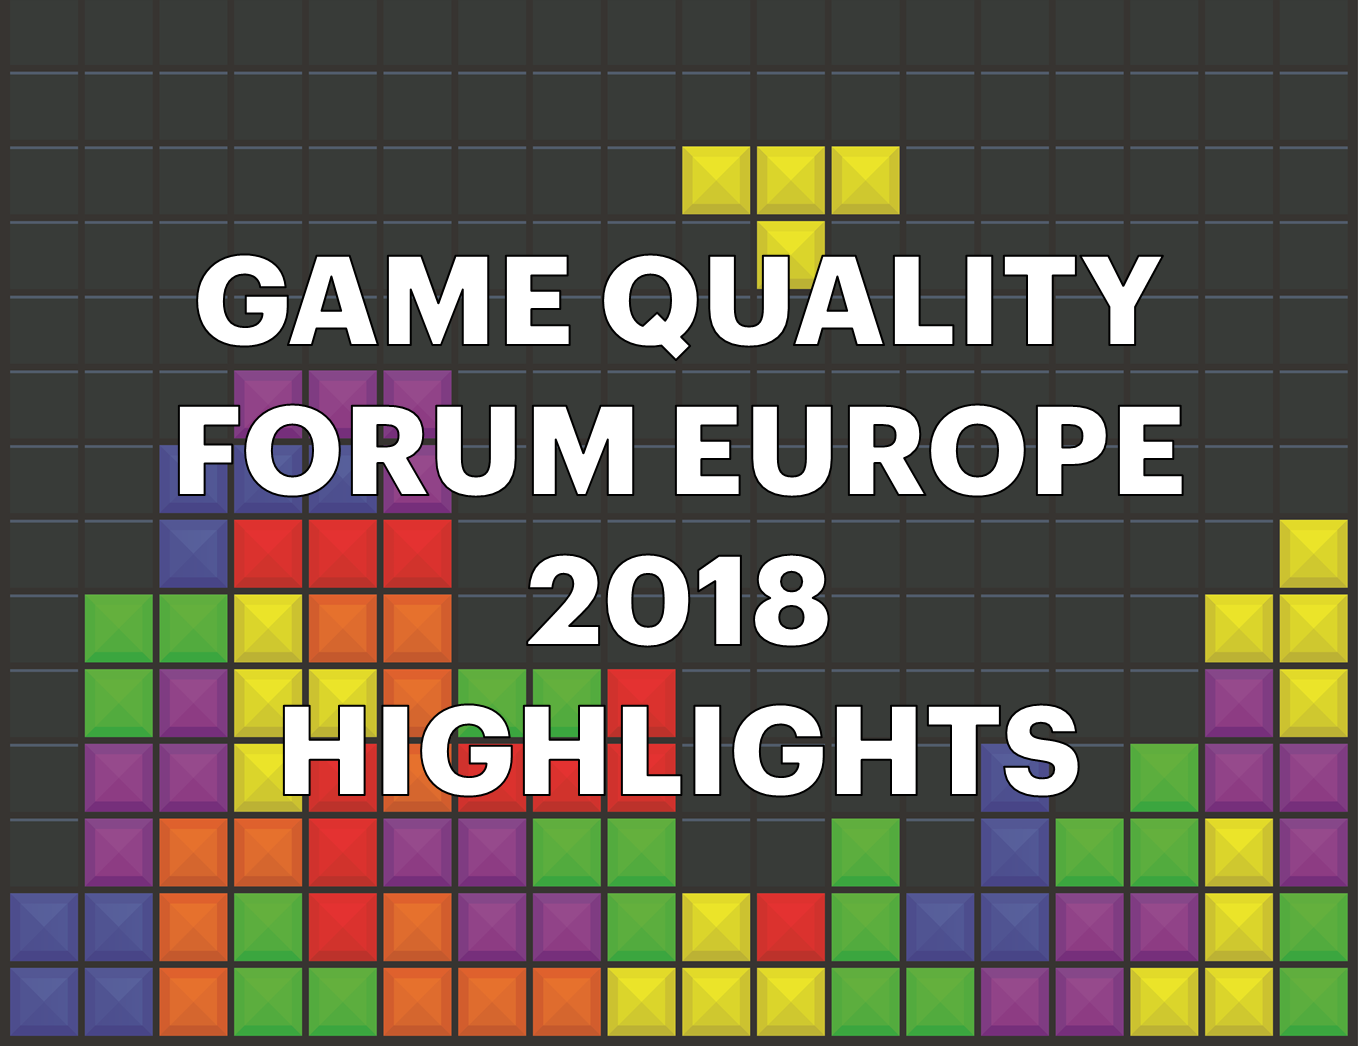 Game Quality Forum Europe 2018 Highlights